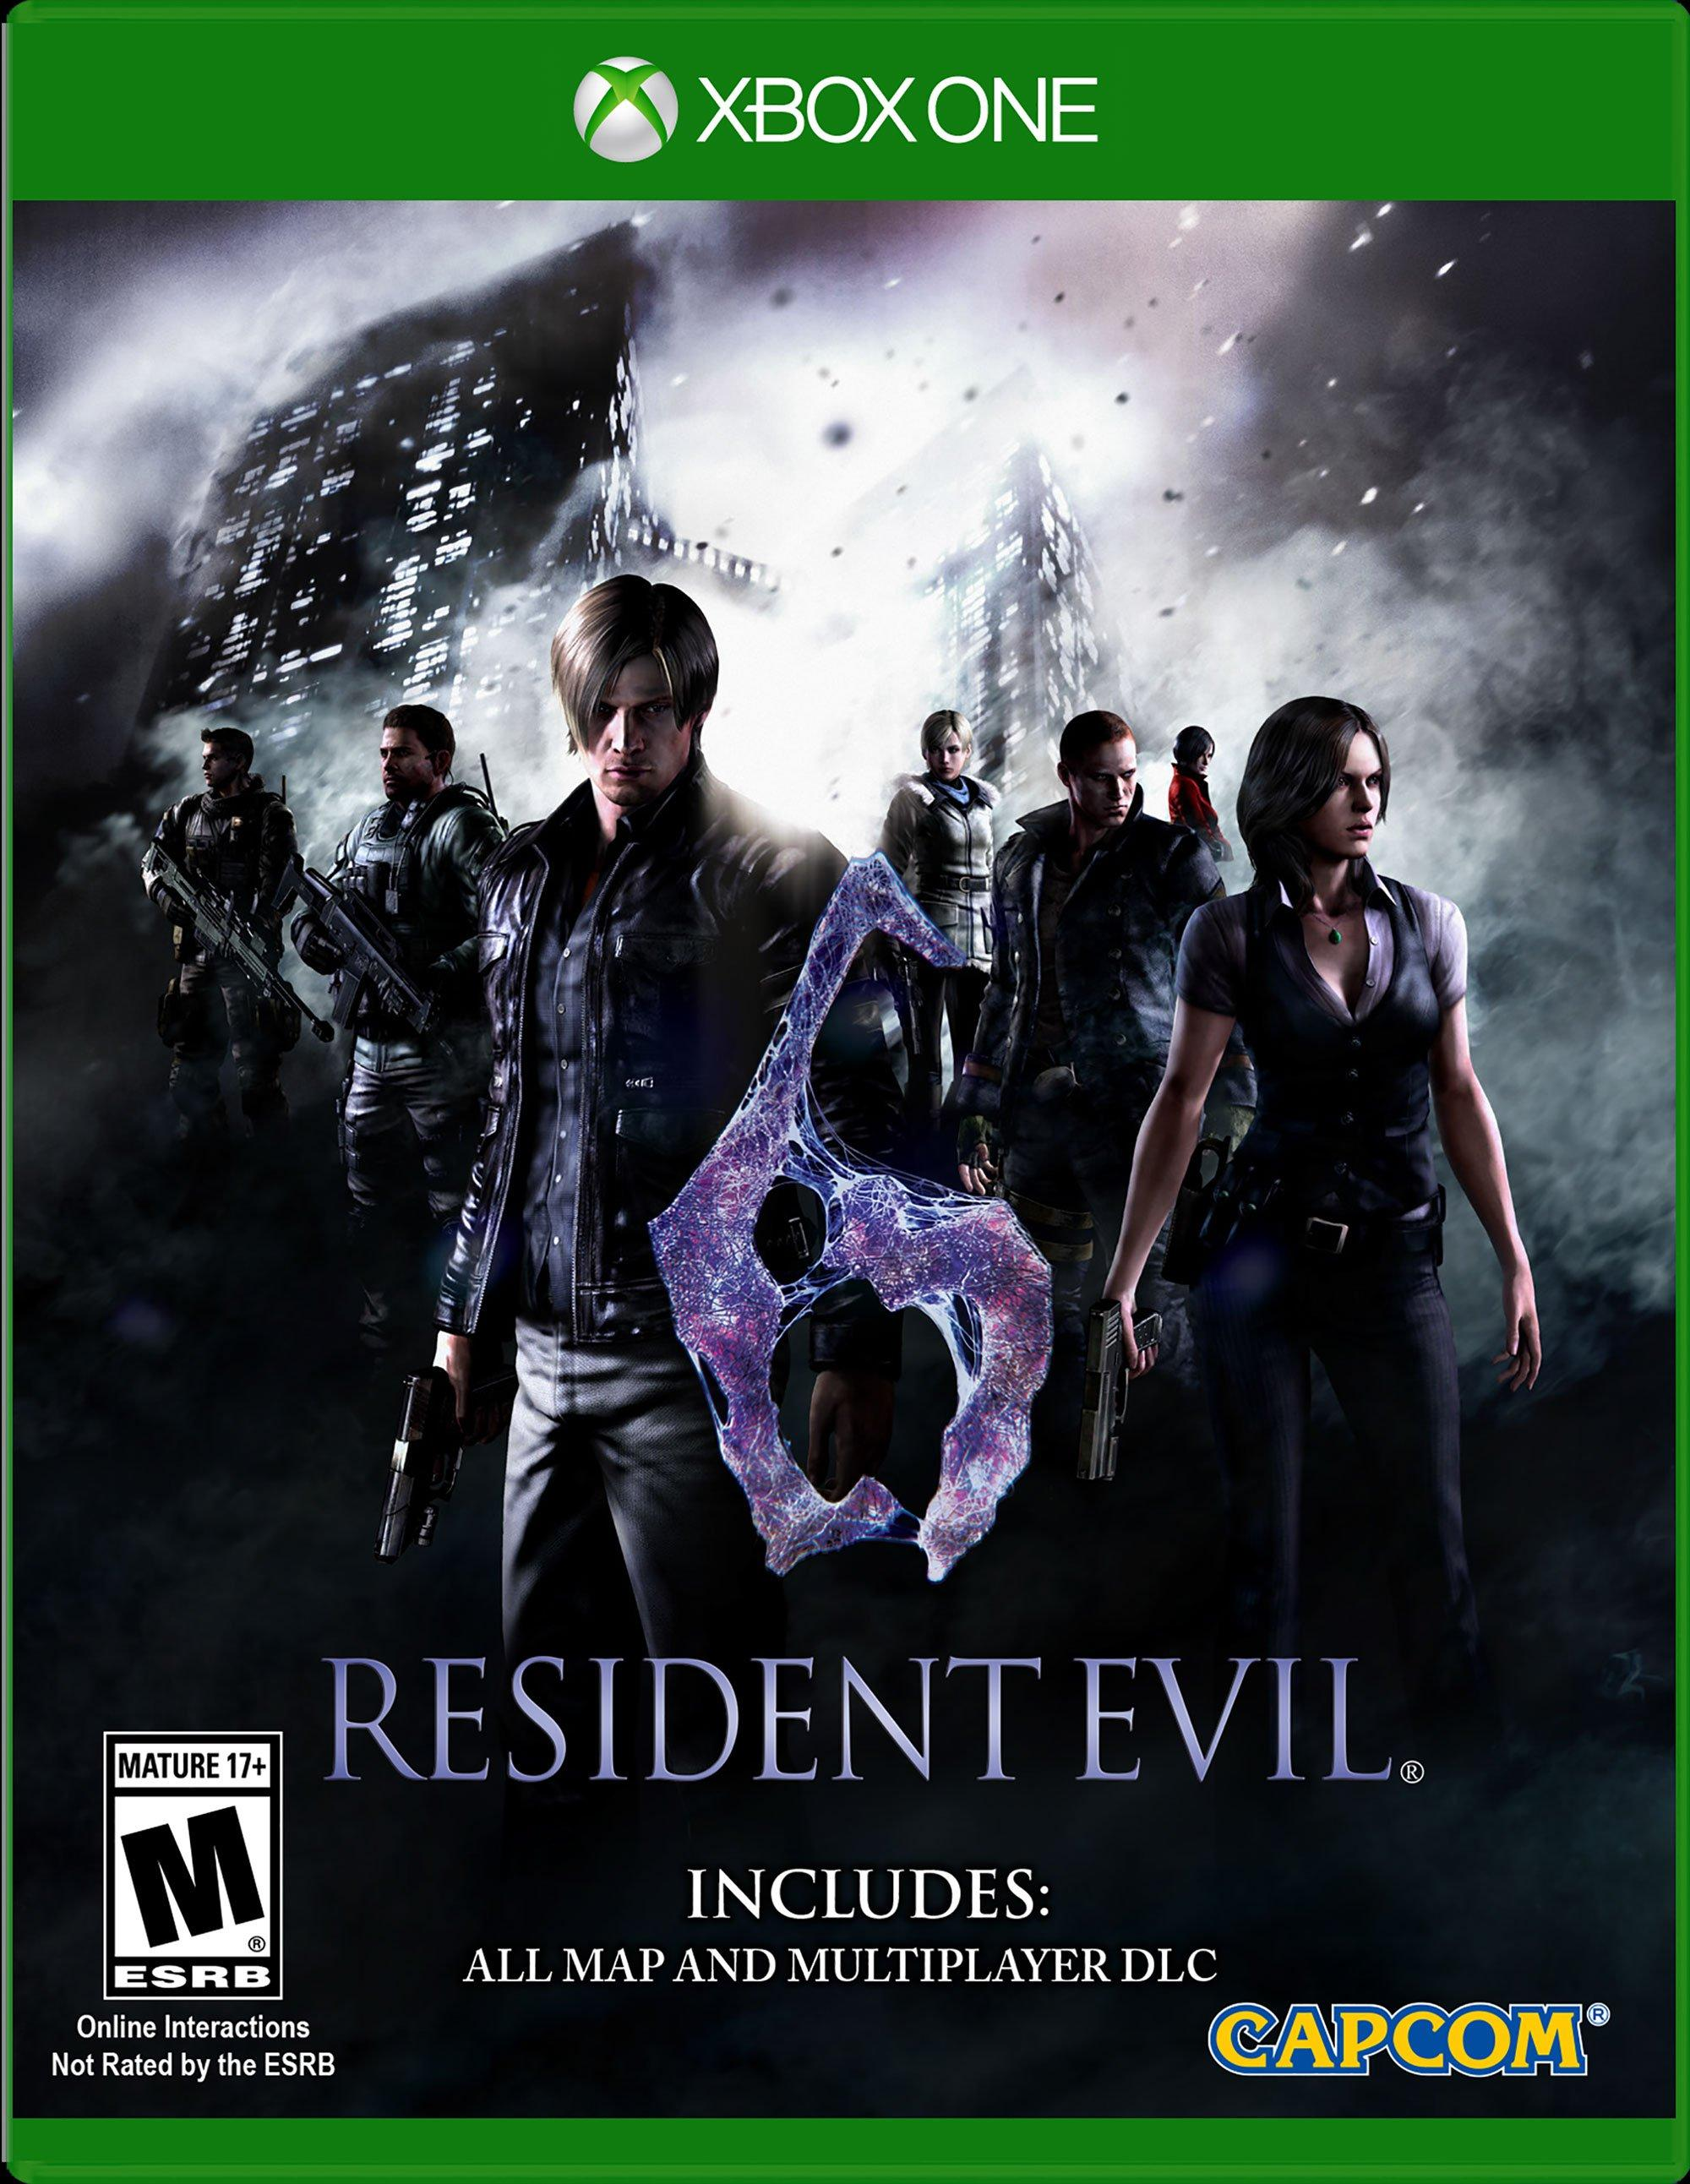 Resident Evil 6 Hd Xbox One Gamestop